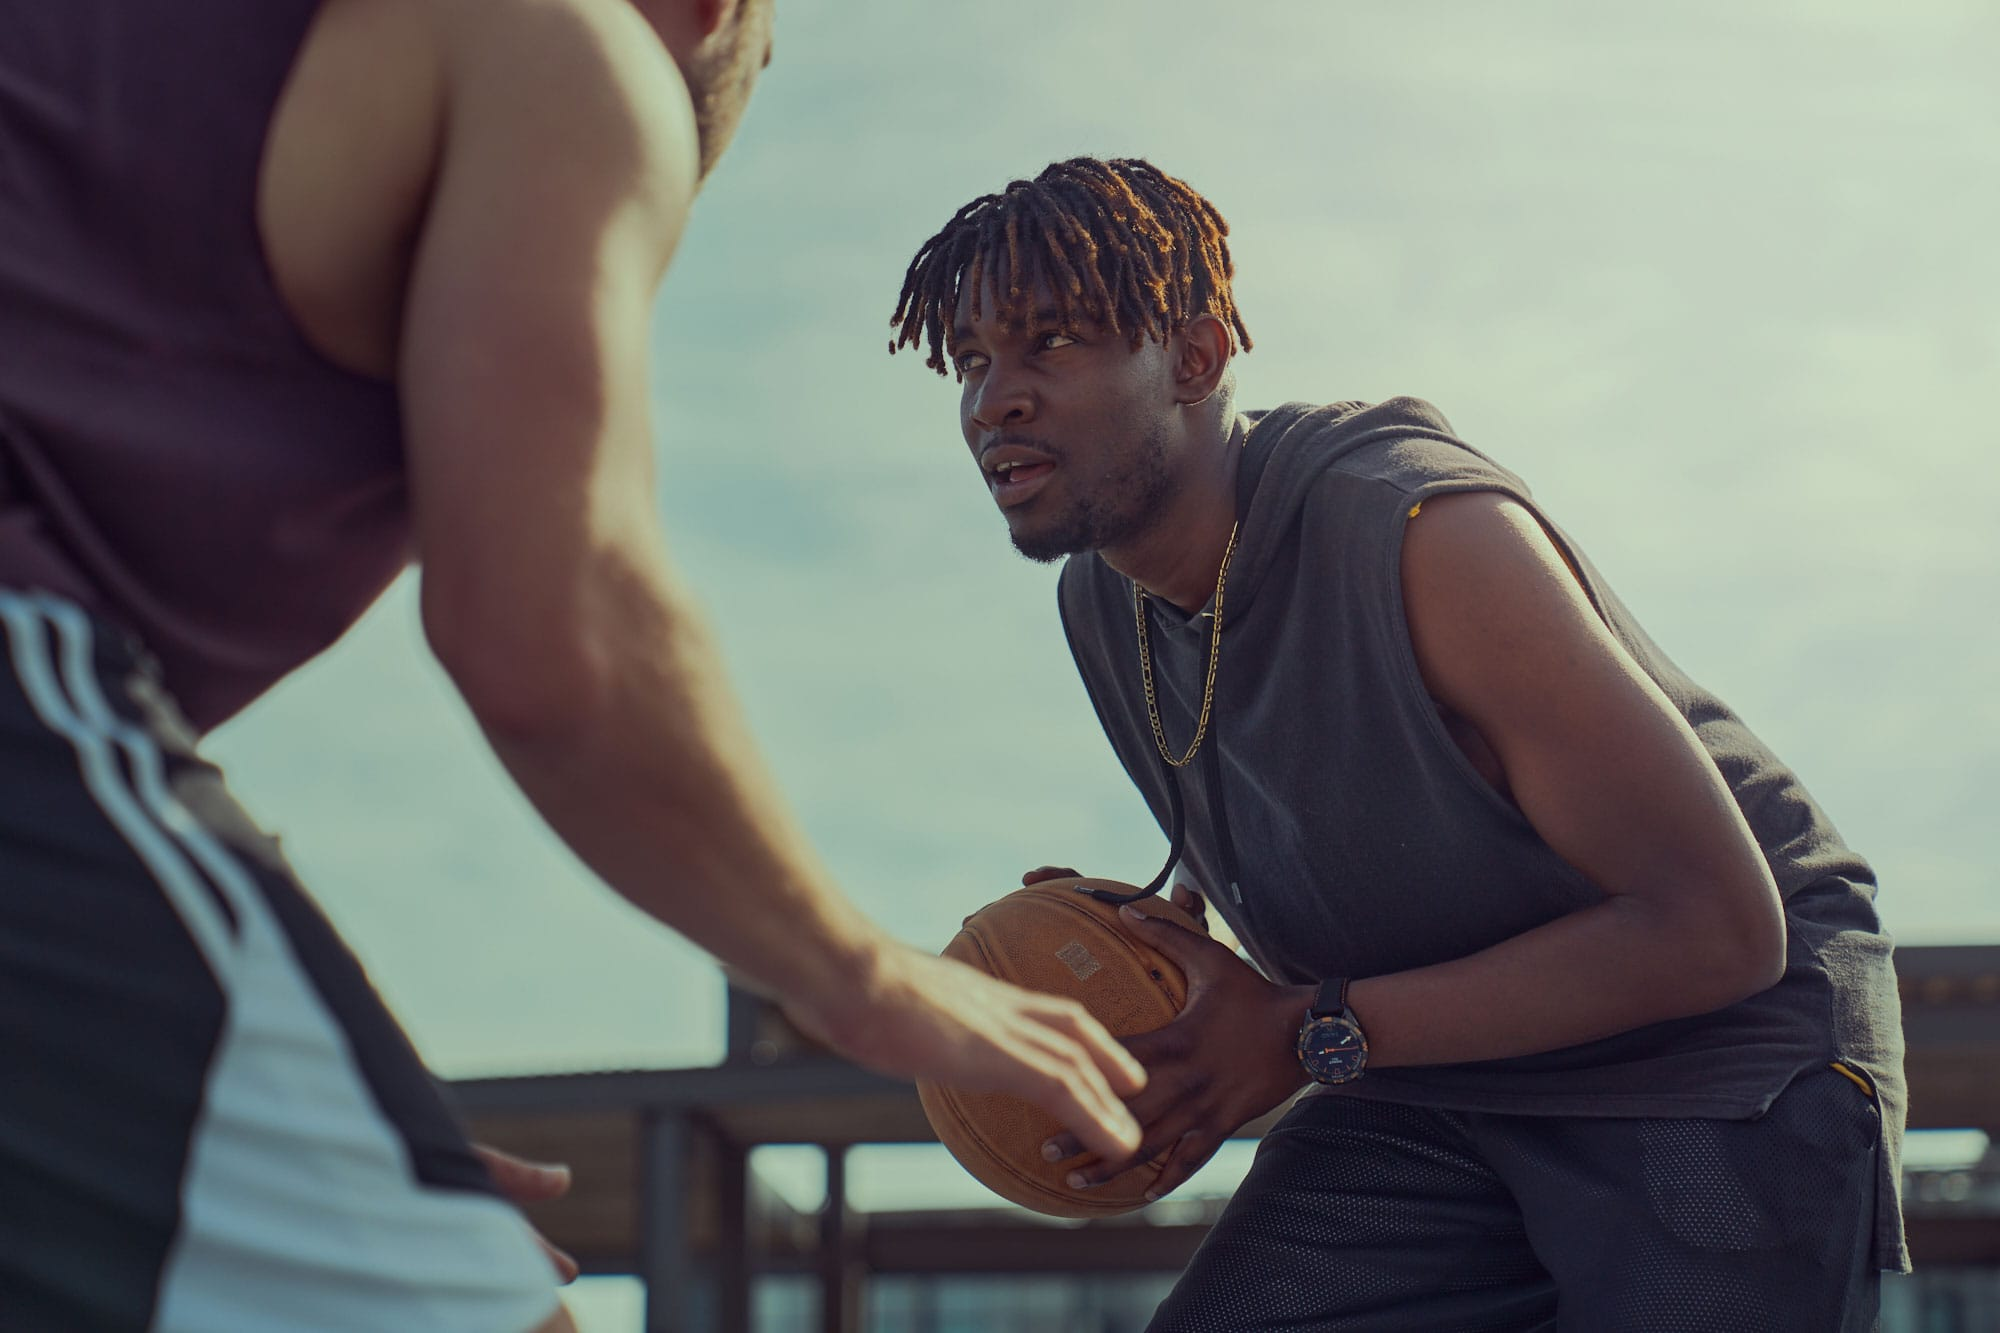 tissot product watch print campaign with basketball players playing one on one at the V&A Water Front Cape Town using natural lighting